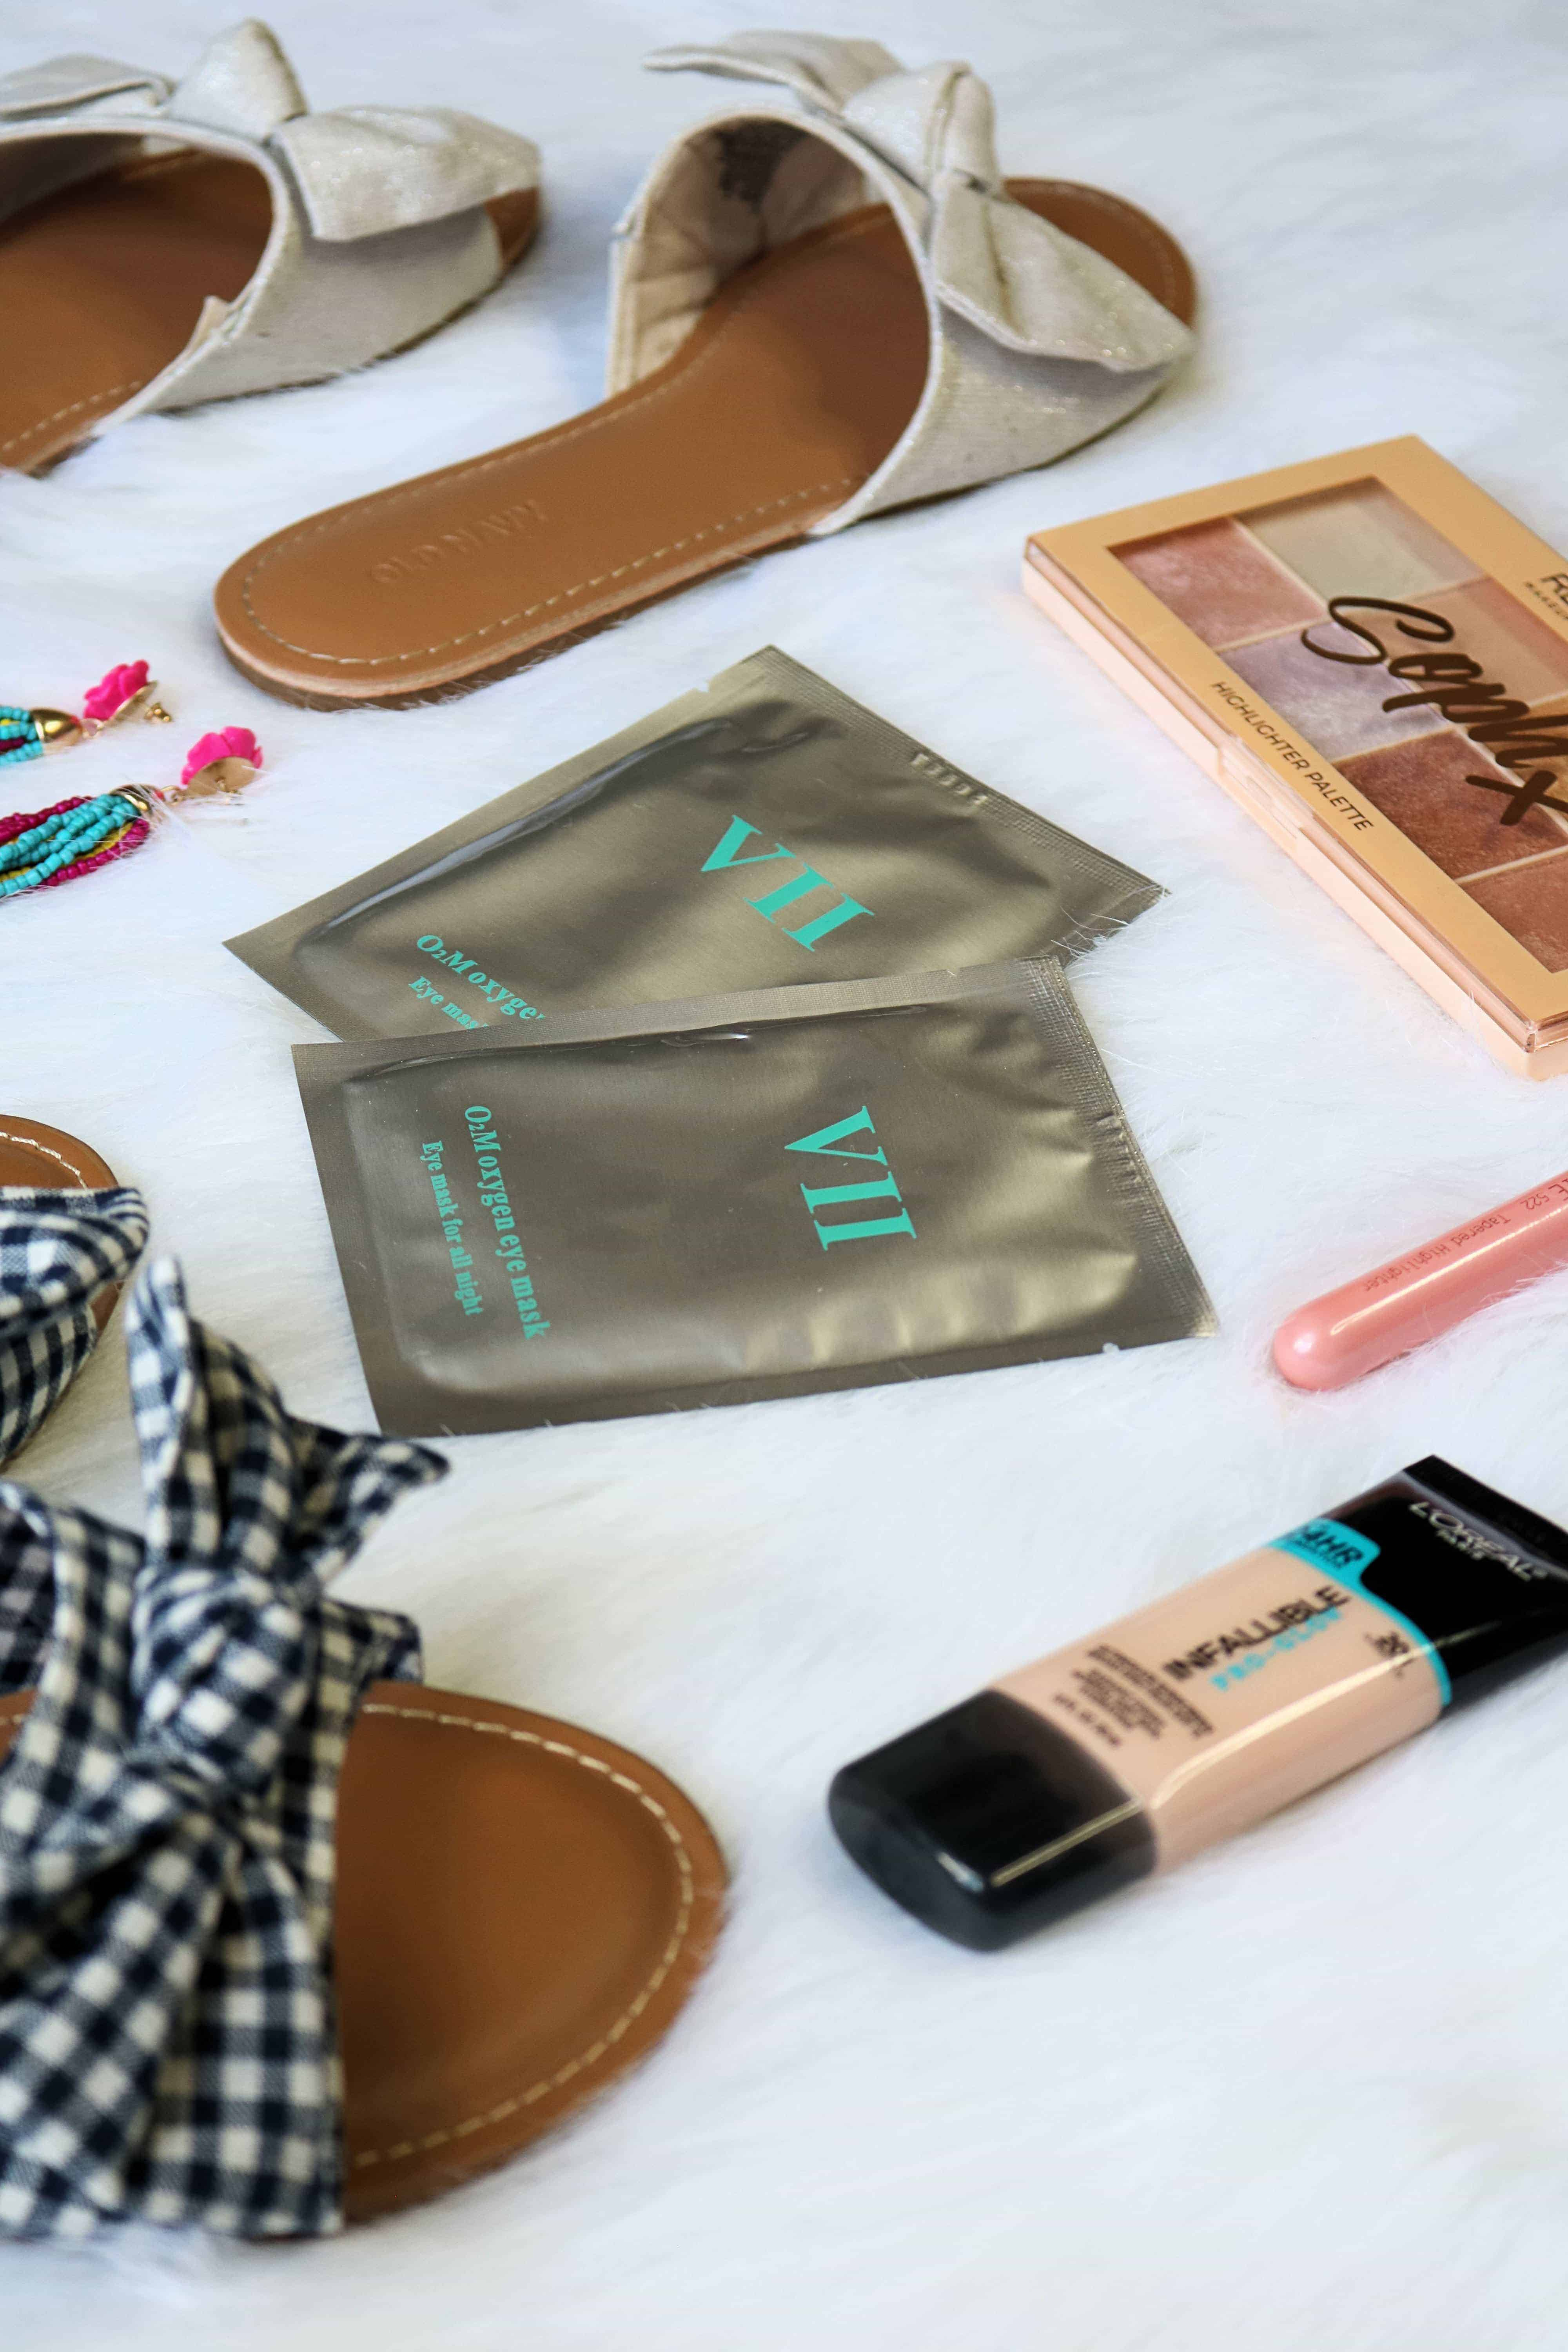 This June 2018 Monthly Beauty + Fashion Favorites post has it all- cute accessories, darling shoes, a skincare must-have for tired eyes, and some drugstore makeup goodies for getting your glow on! #monthlyfavorites #beautyfavorites #makeup #skincare #fashionmusthaves